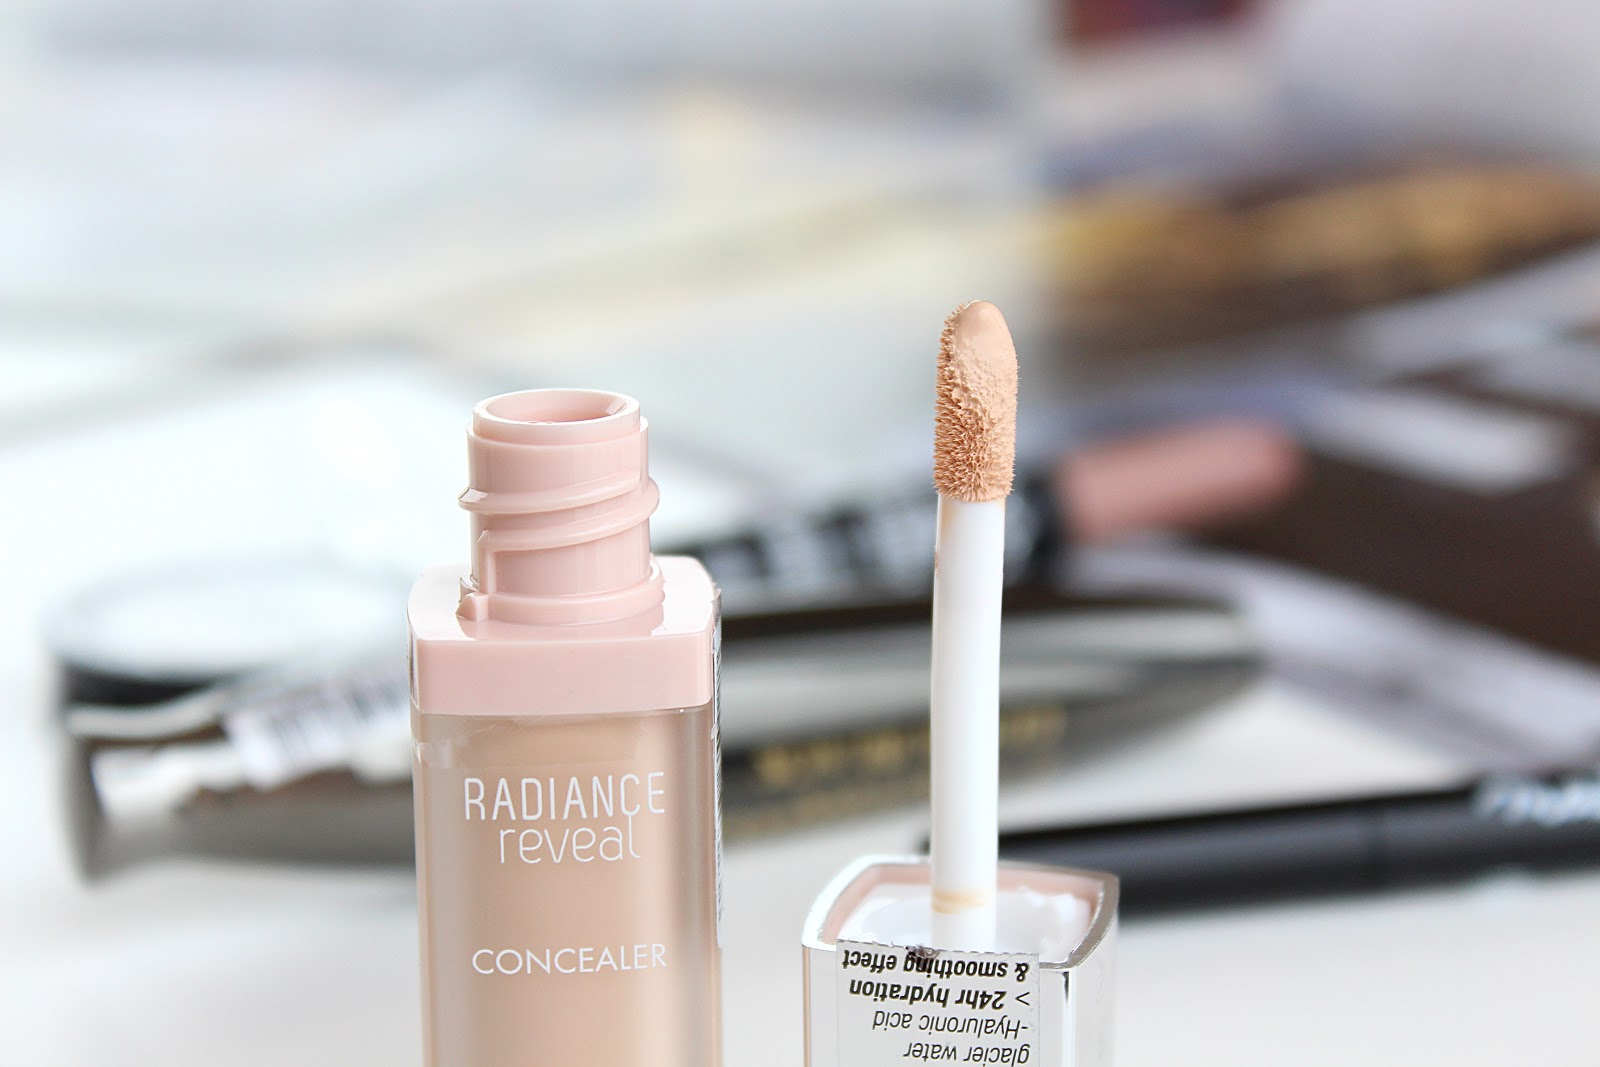 Bourjois Radiance Reveal Concealer in Ivory Swatches